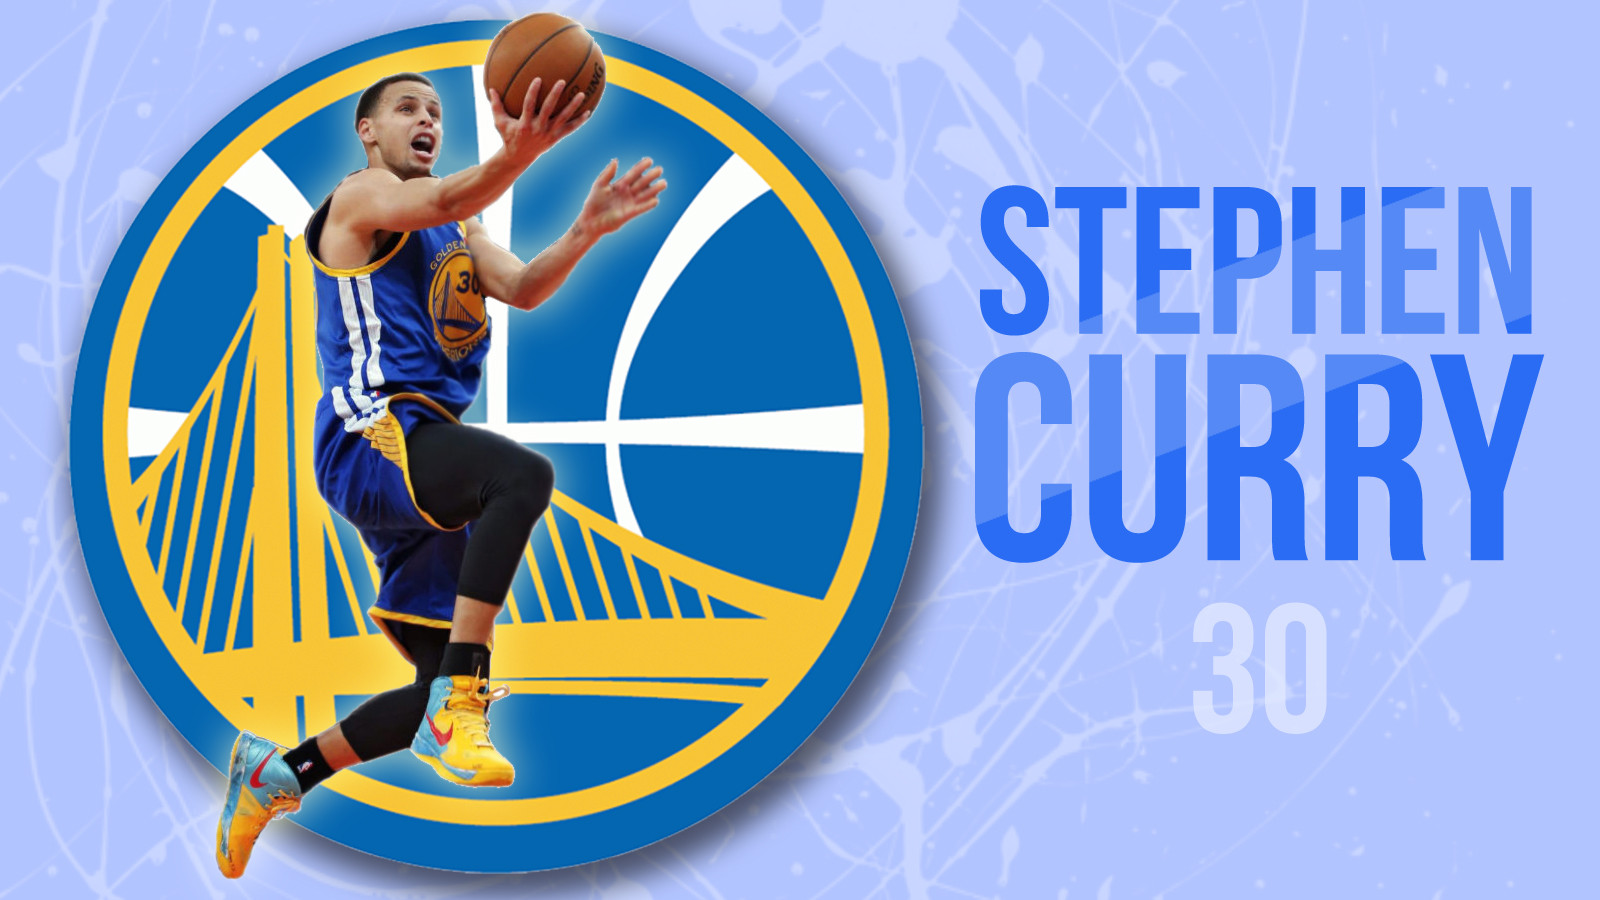 Stephen Curry wallpaper free download.